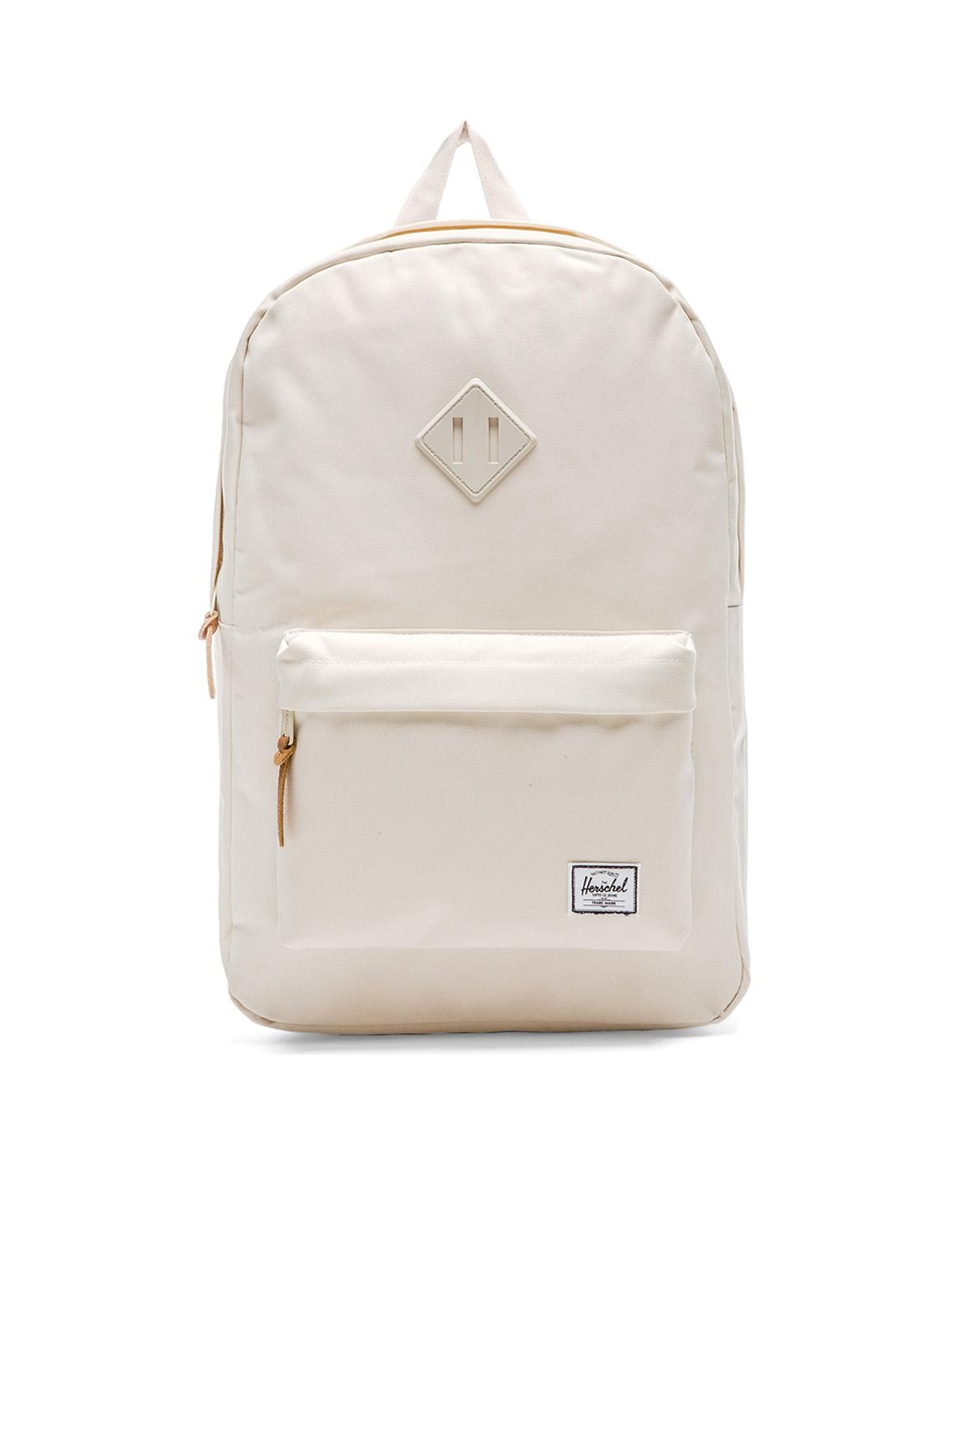 Herschel Supply Co. Heritage Backpack in Natural